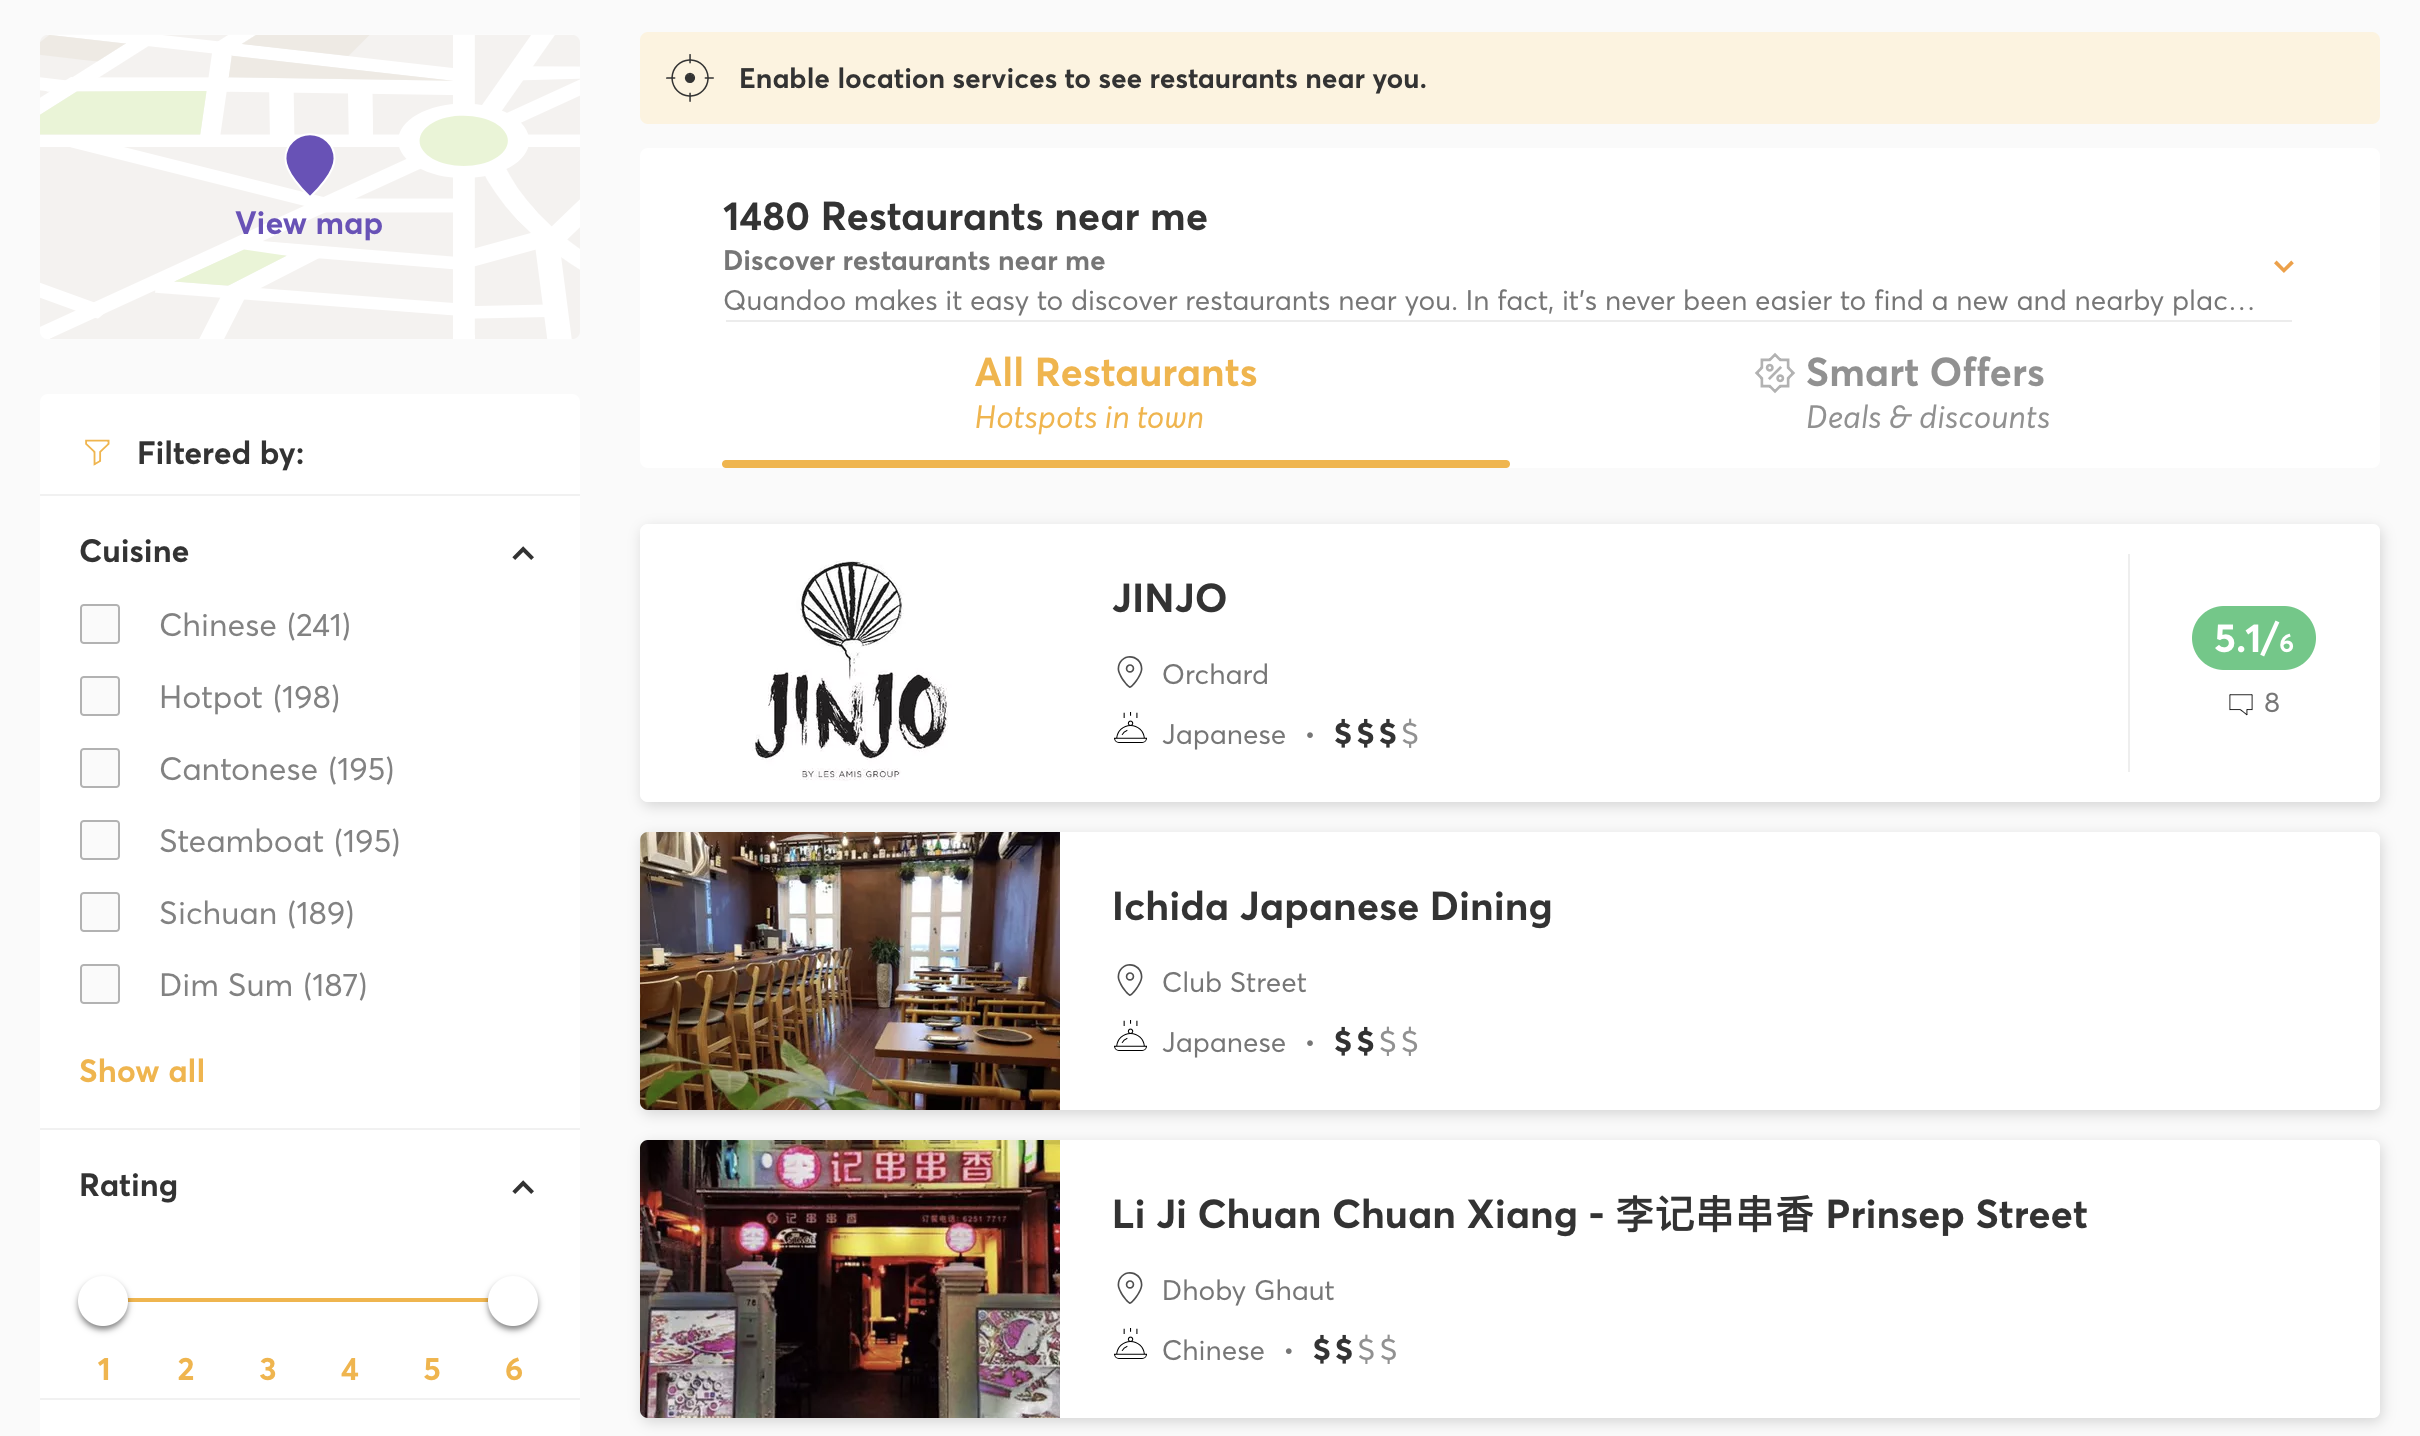 Restaurants Available in Quandoo